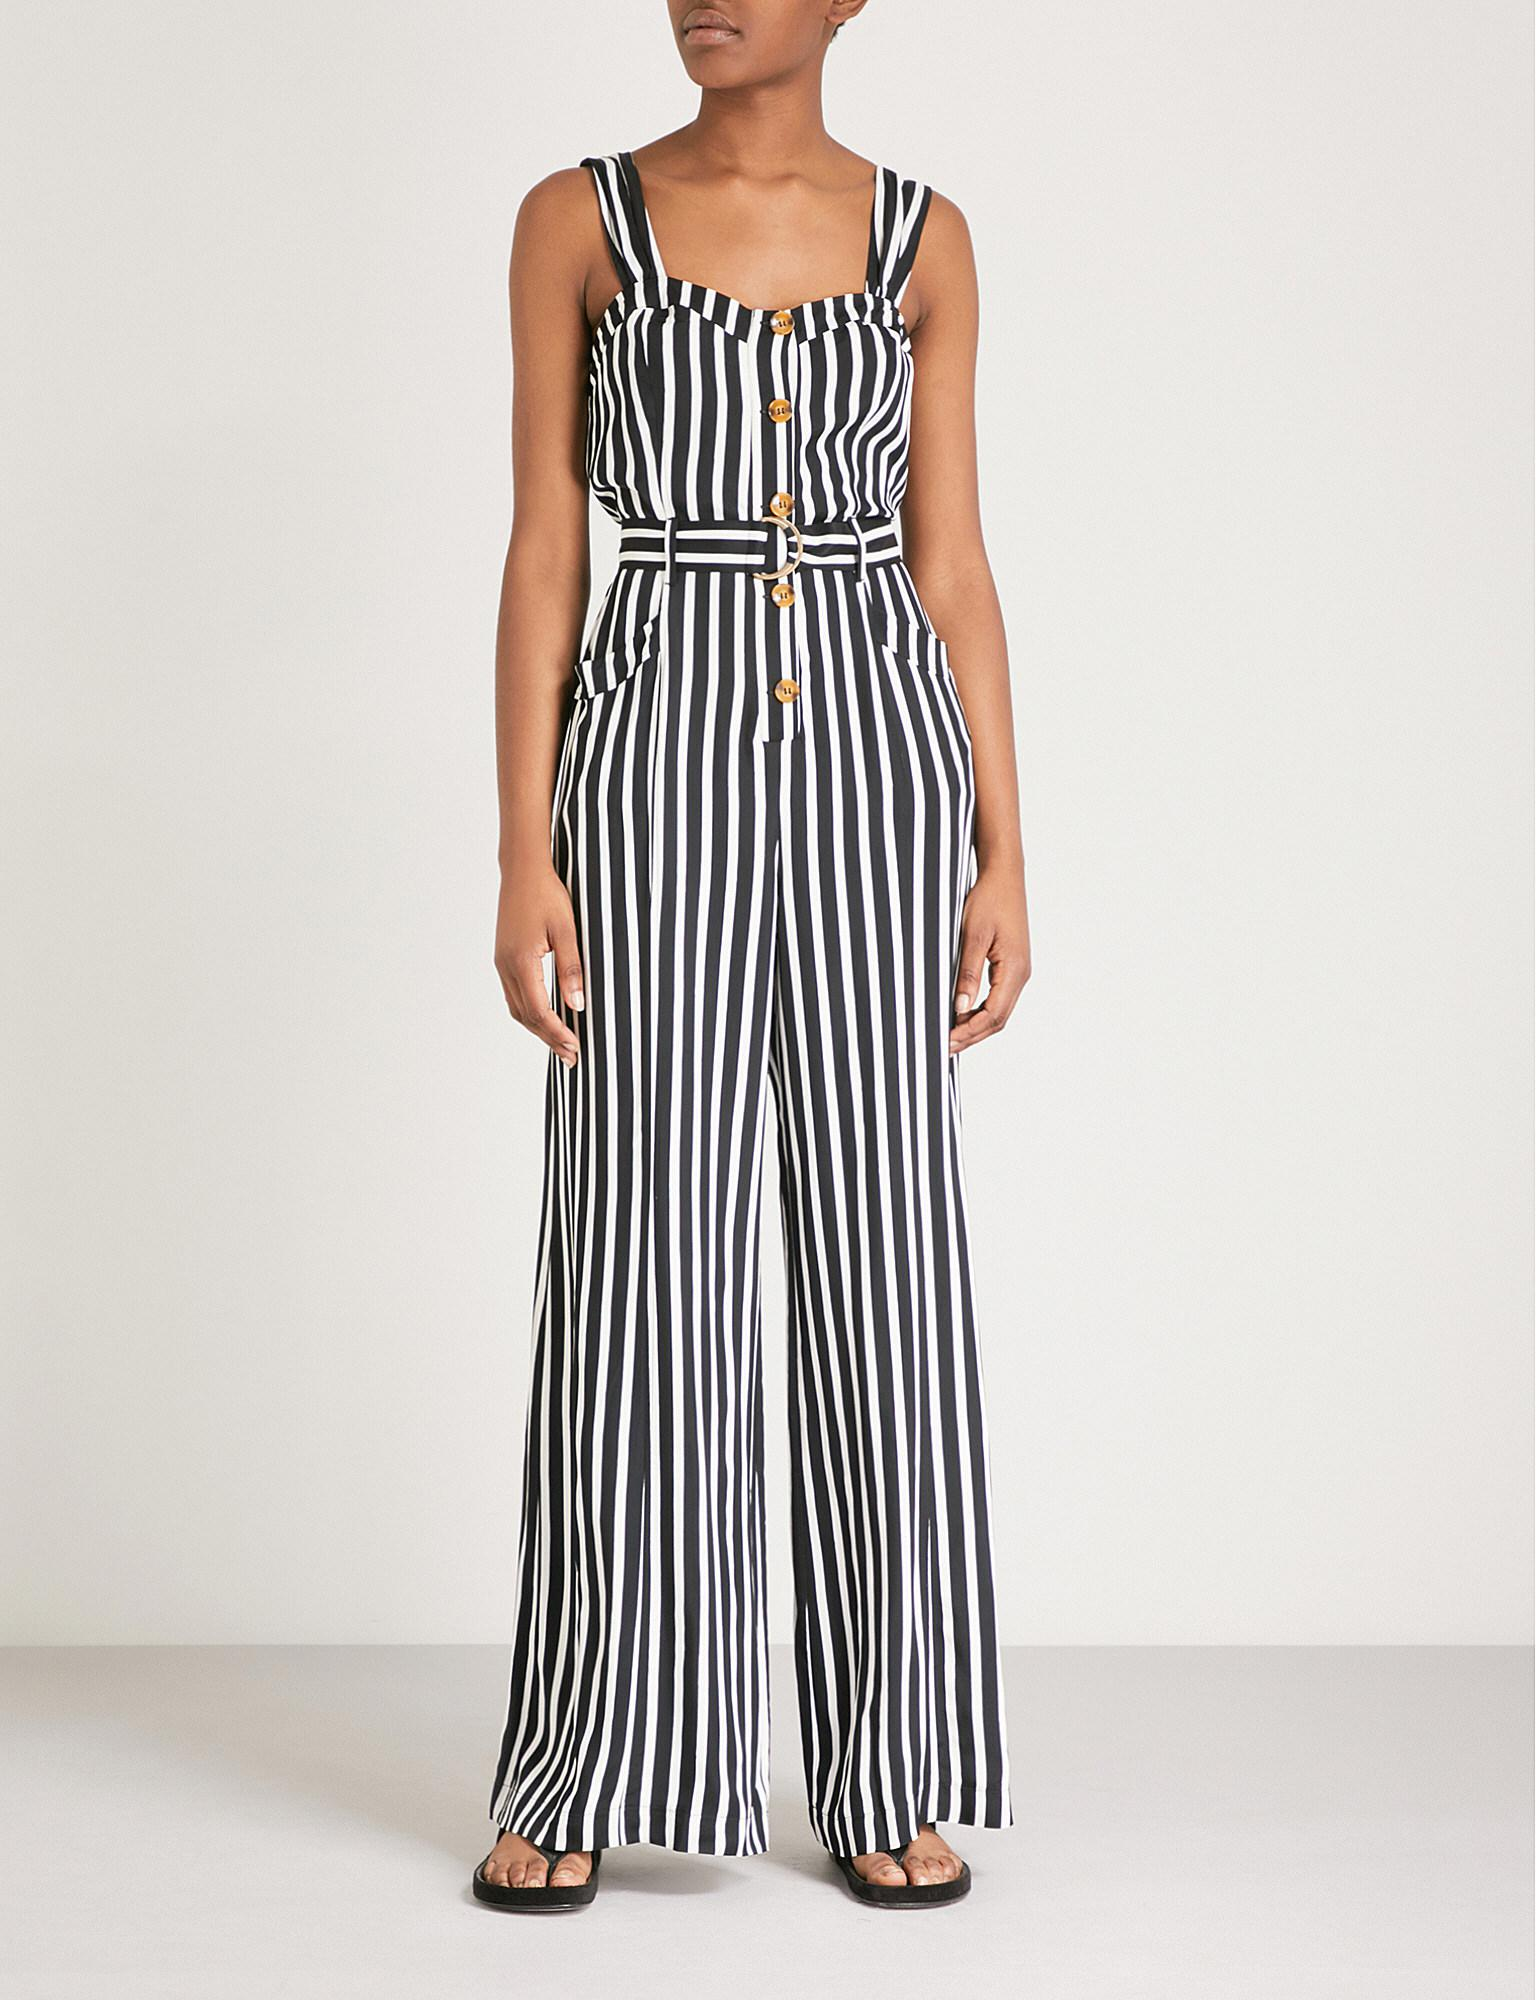 418c69308ff6 Lyst - Free People City Girl Striped Satin Jumpsuit in Black